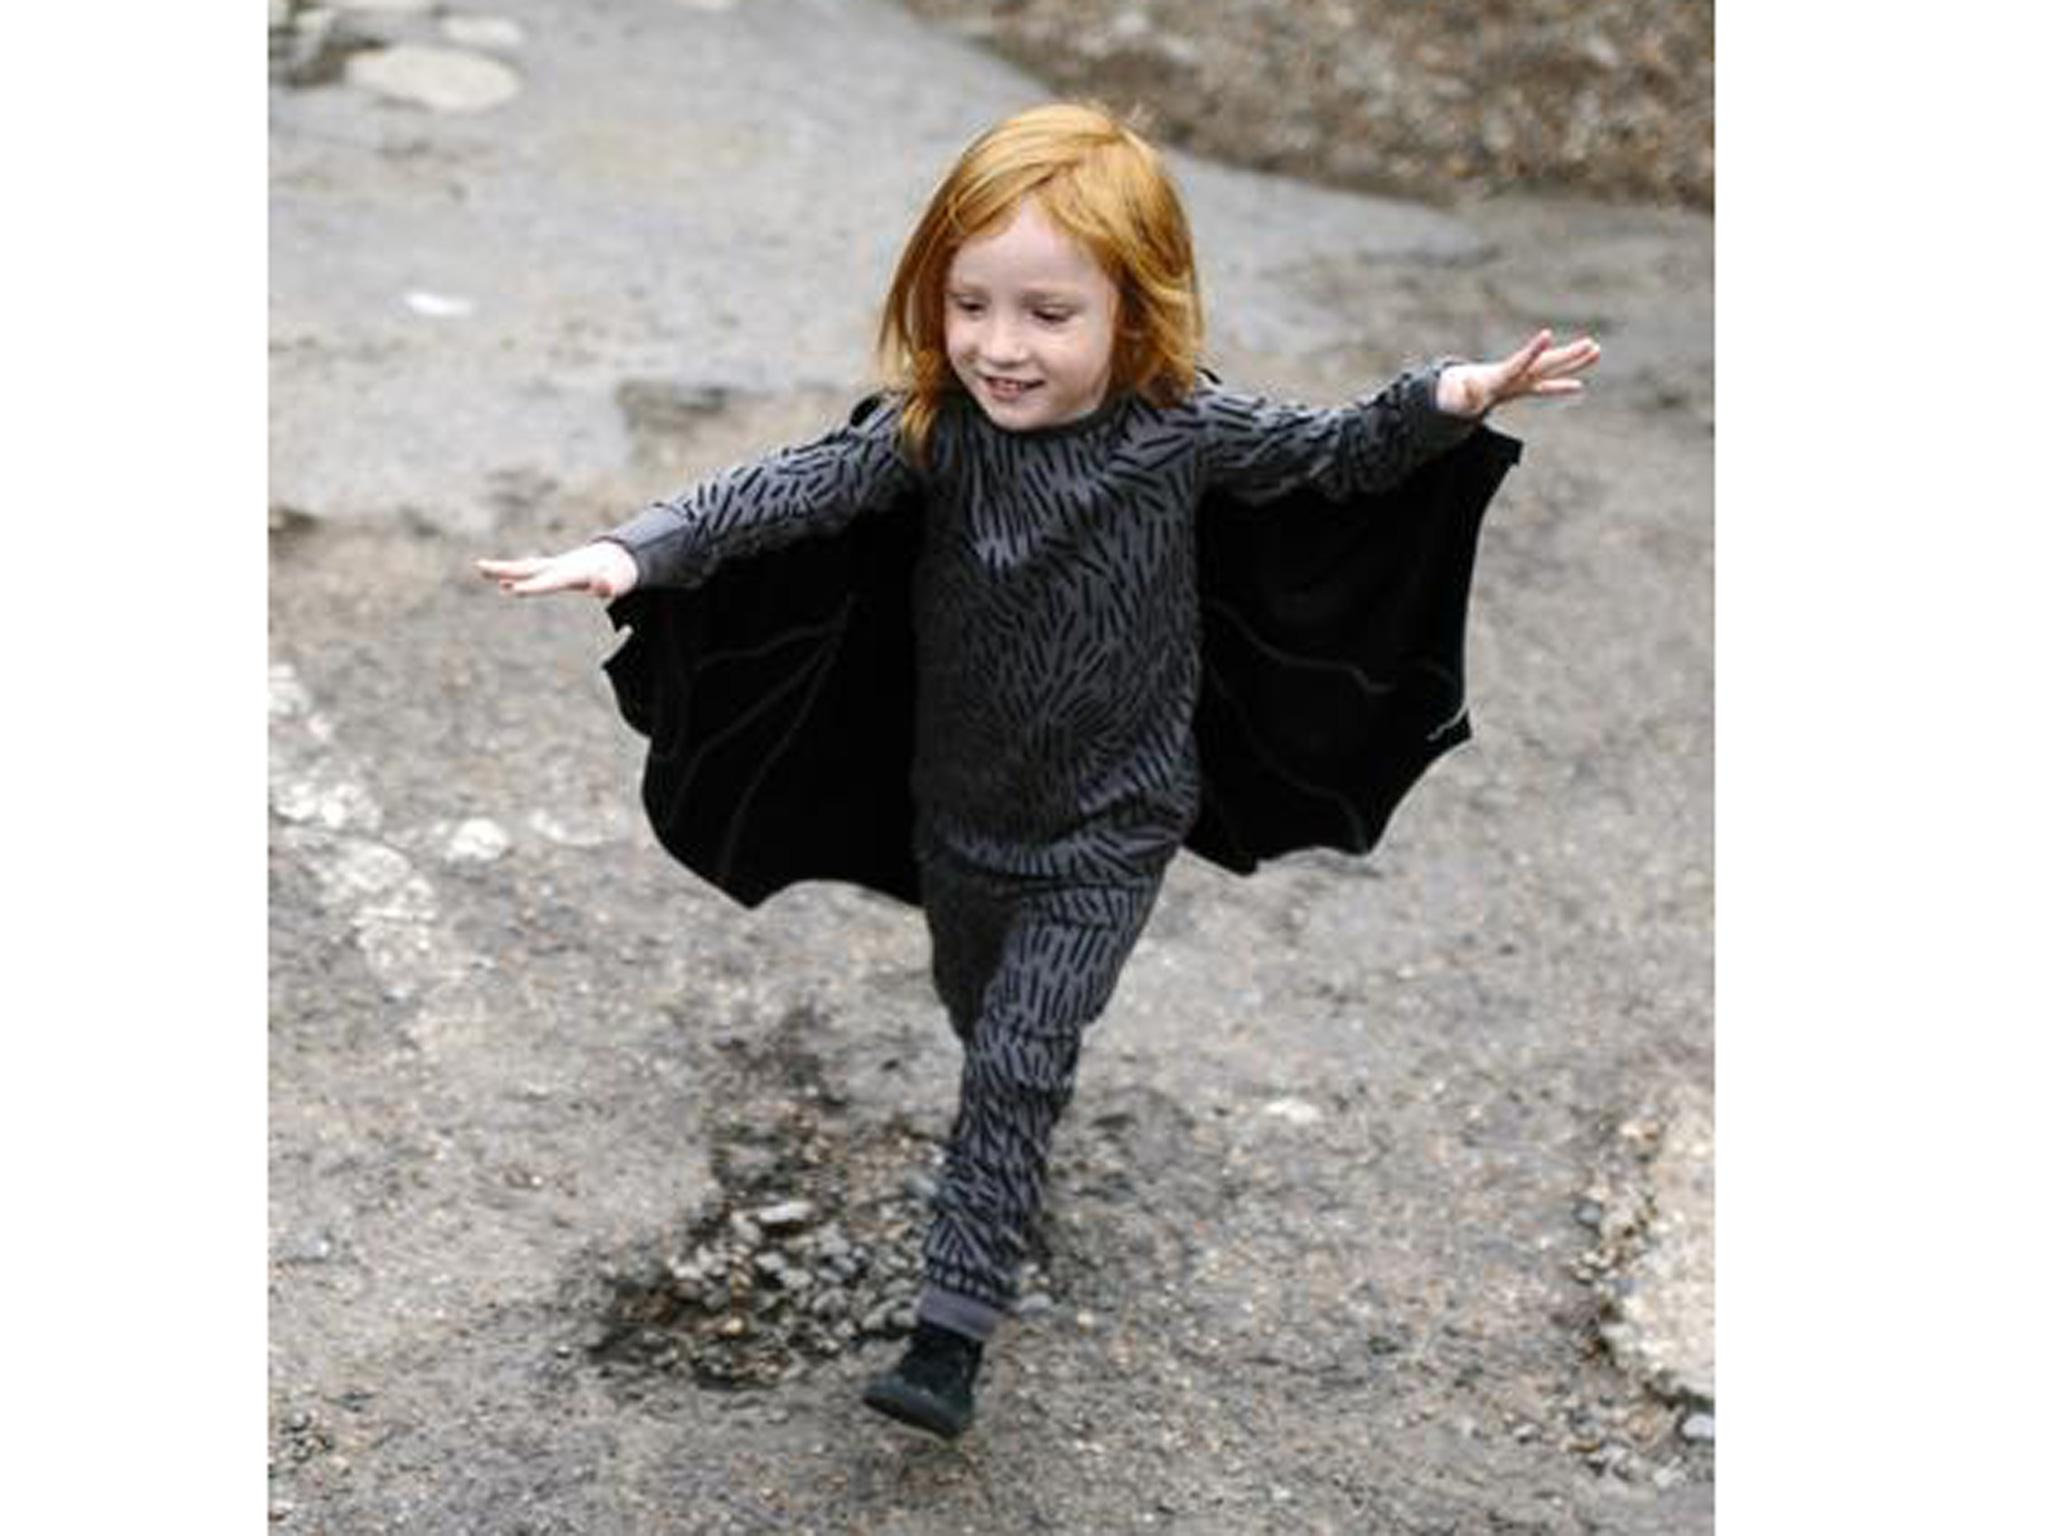 dcefb7b85d1 10 best kids  Halloween costumes » Big Halloween Geek Costumes